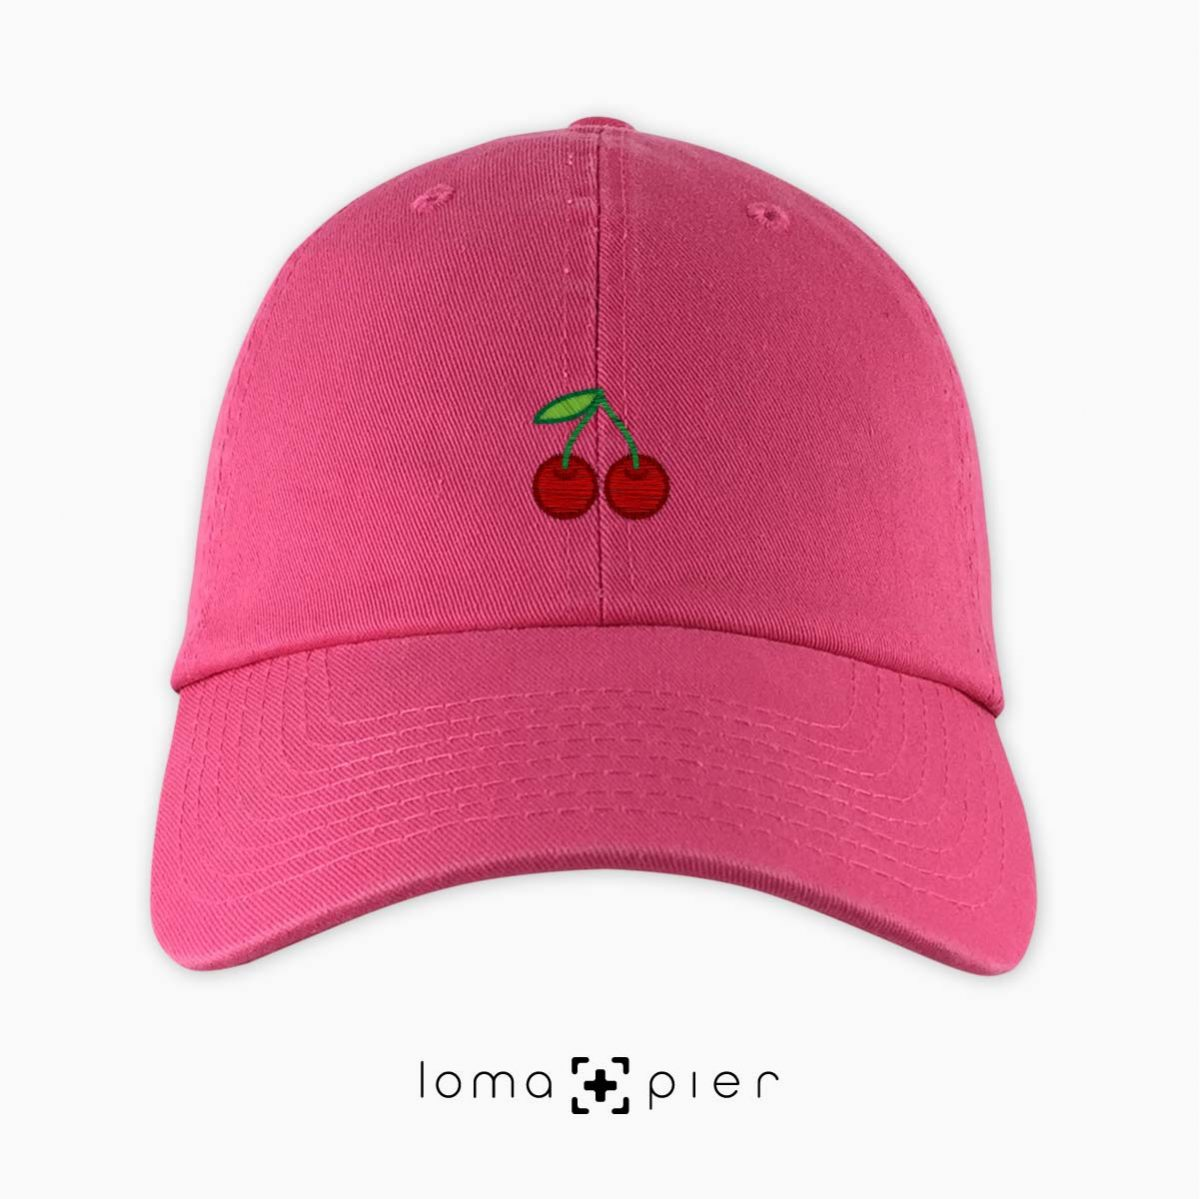 CHERRIES icon embroidered on a pink dad hat by loma+pier hat store made in the USA